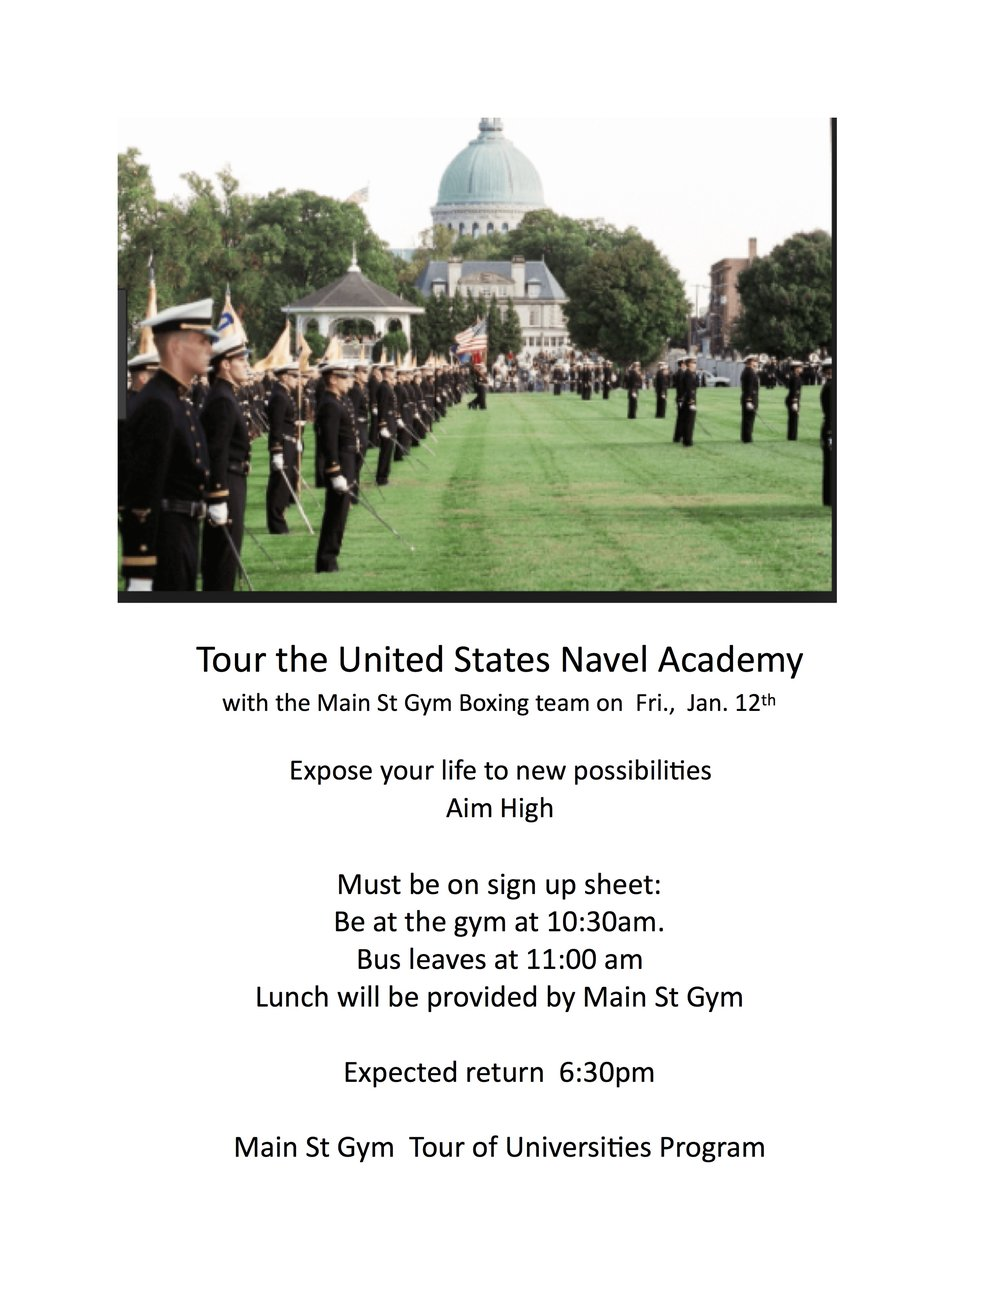 Navy tour flyer.jpg